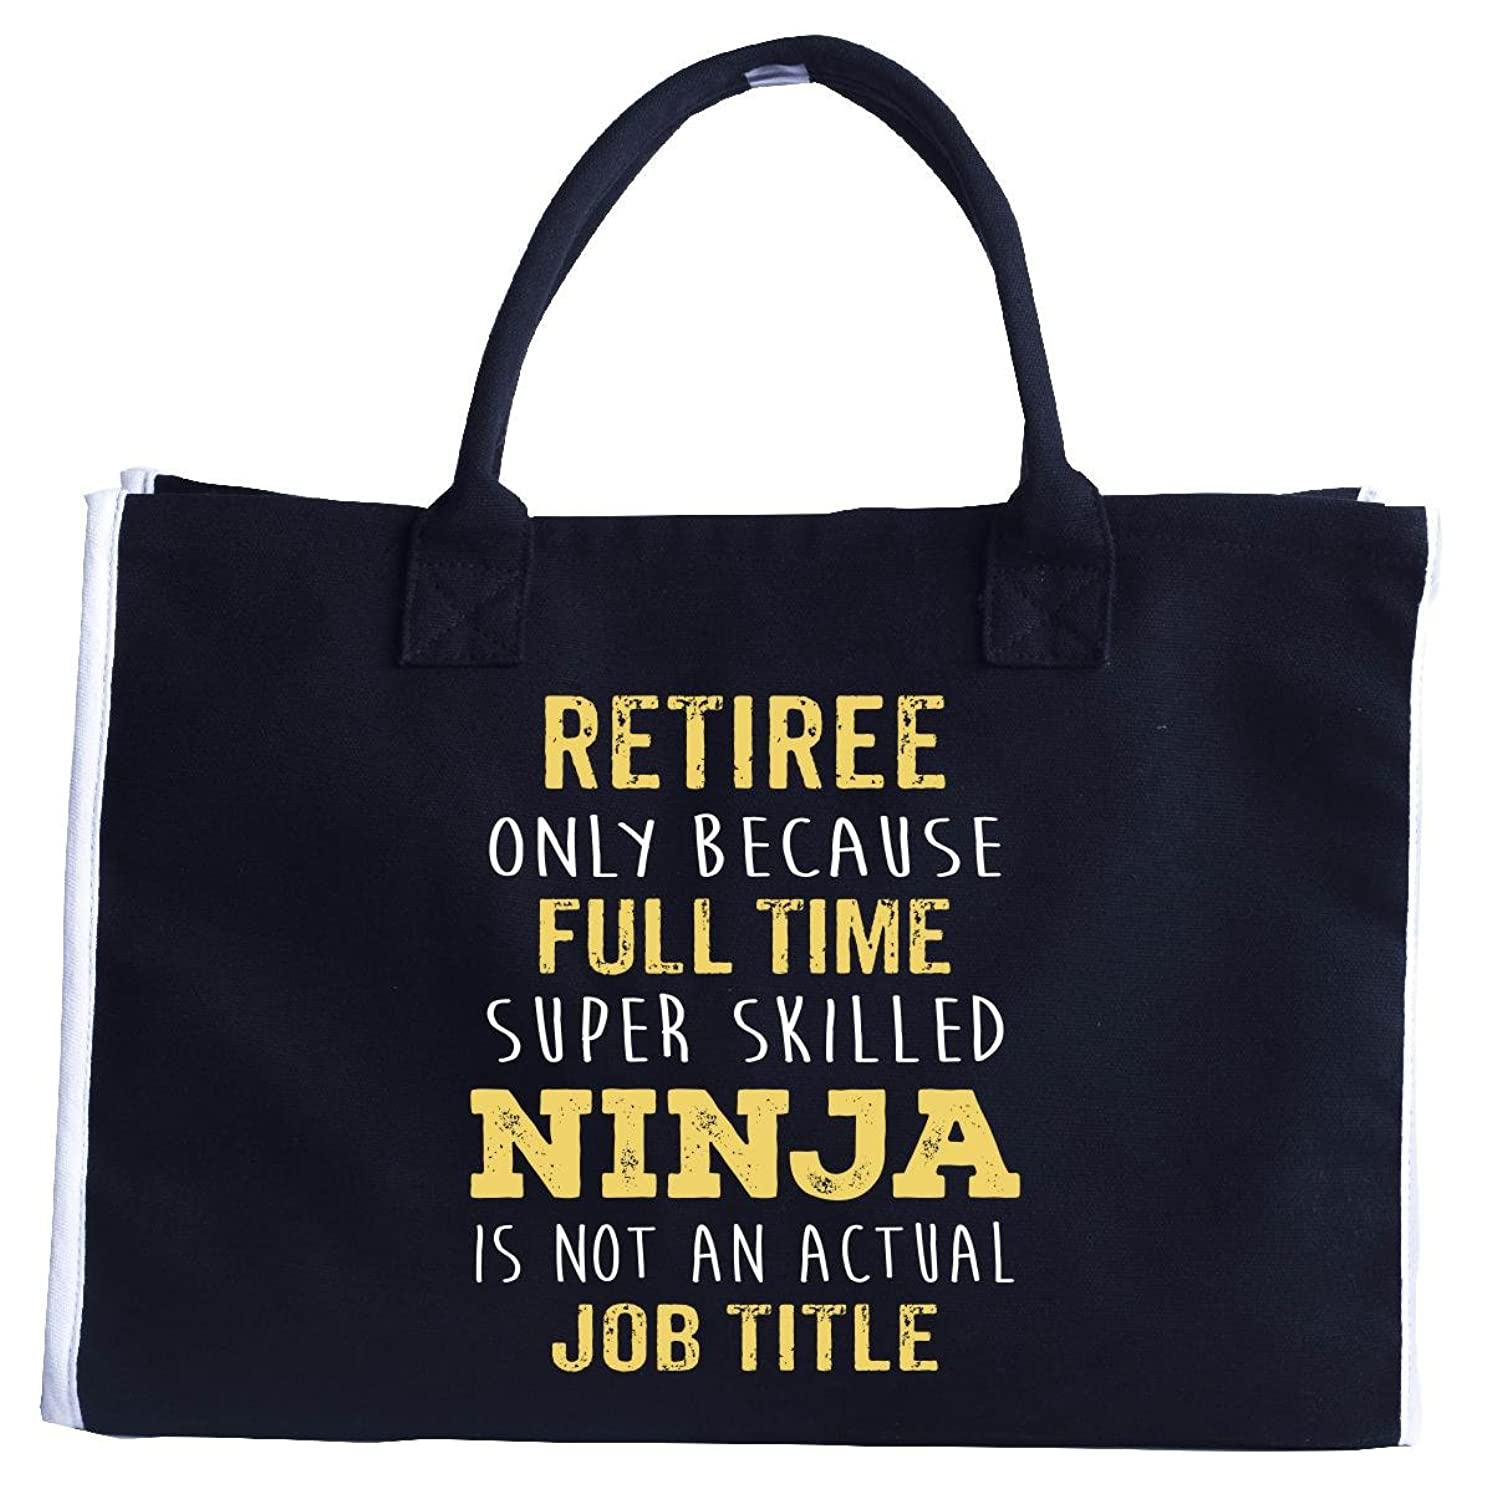 Best Gift Idea For A Super Skilled Ninja Retiree - Fashion Tote Bag